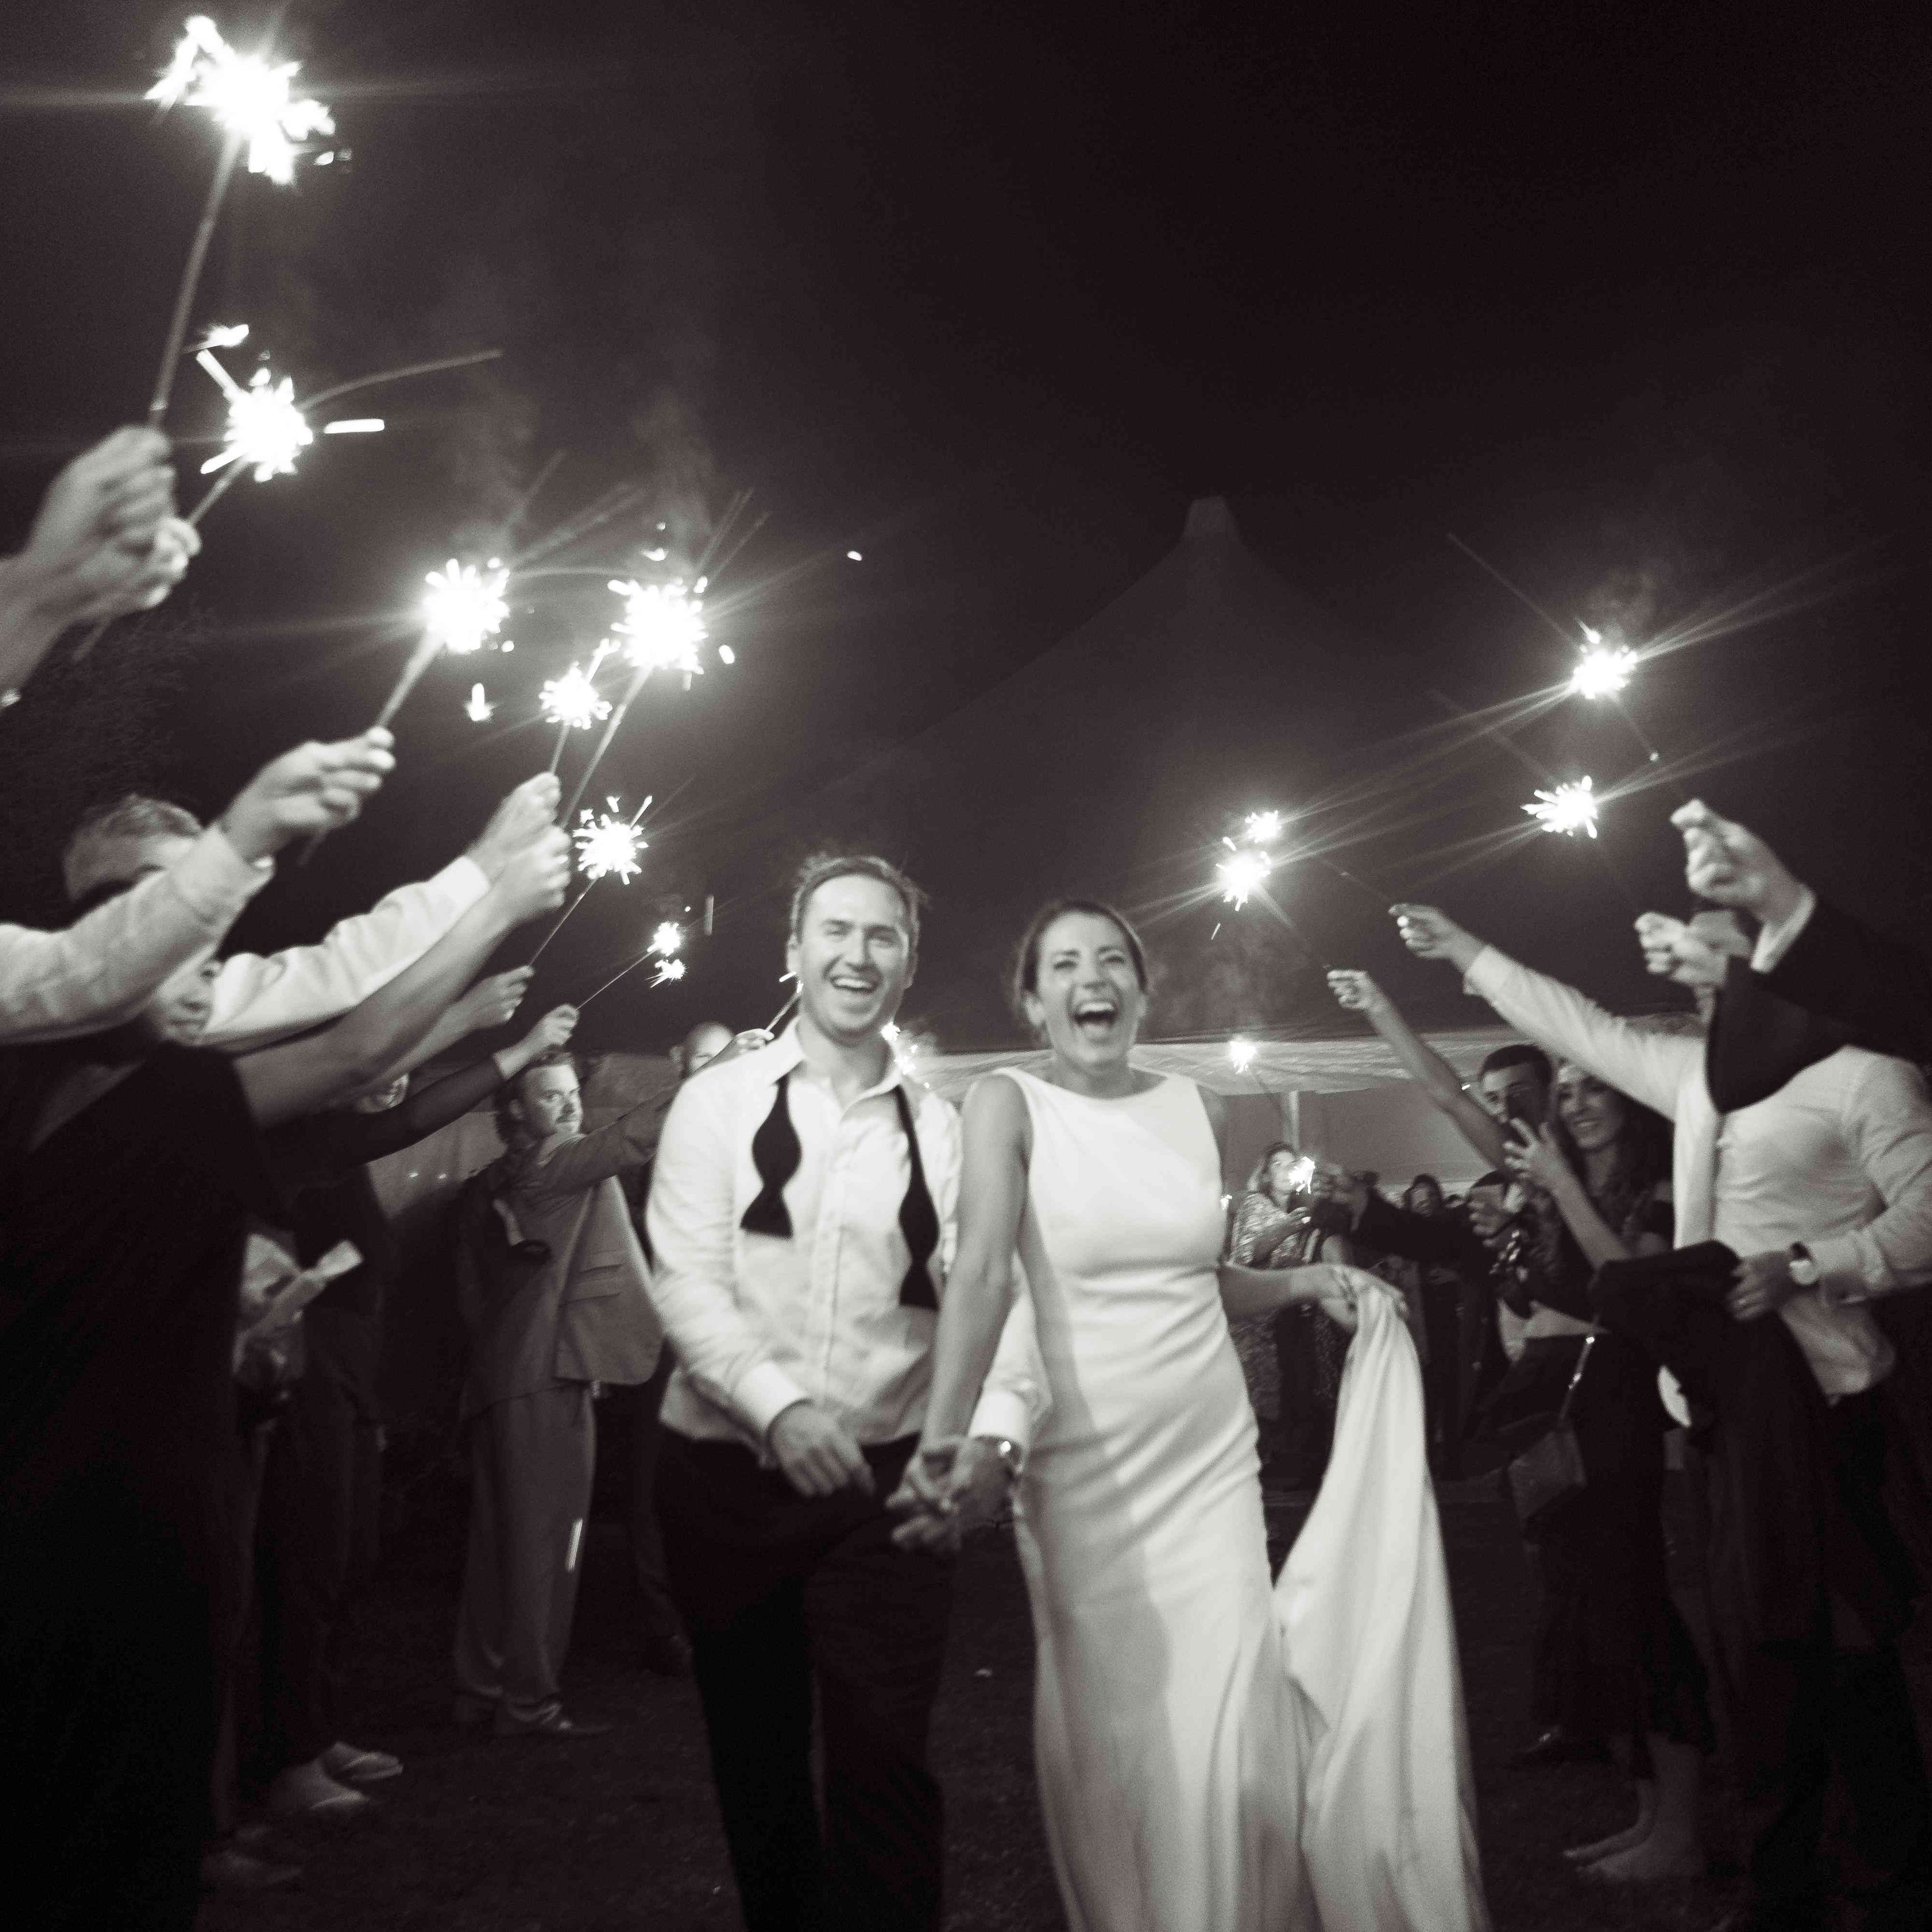 Wedding Details 101: 25 Things You Forget When Planning a